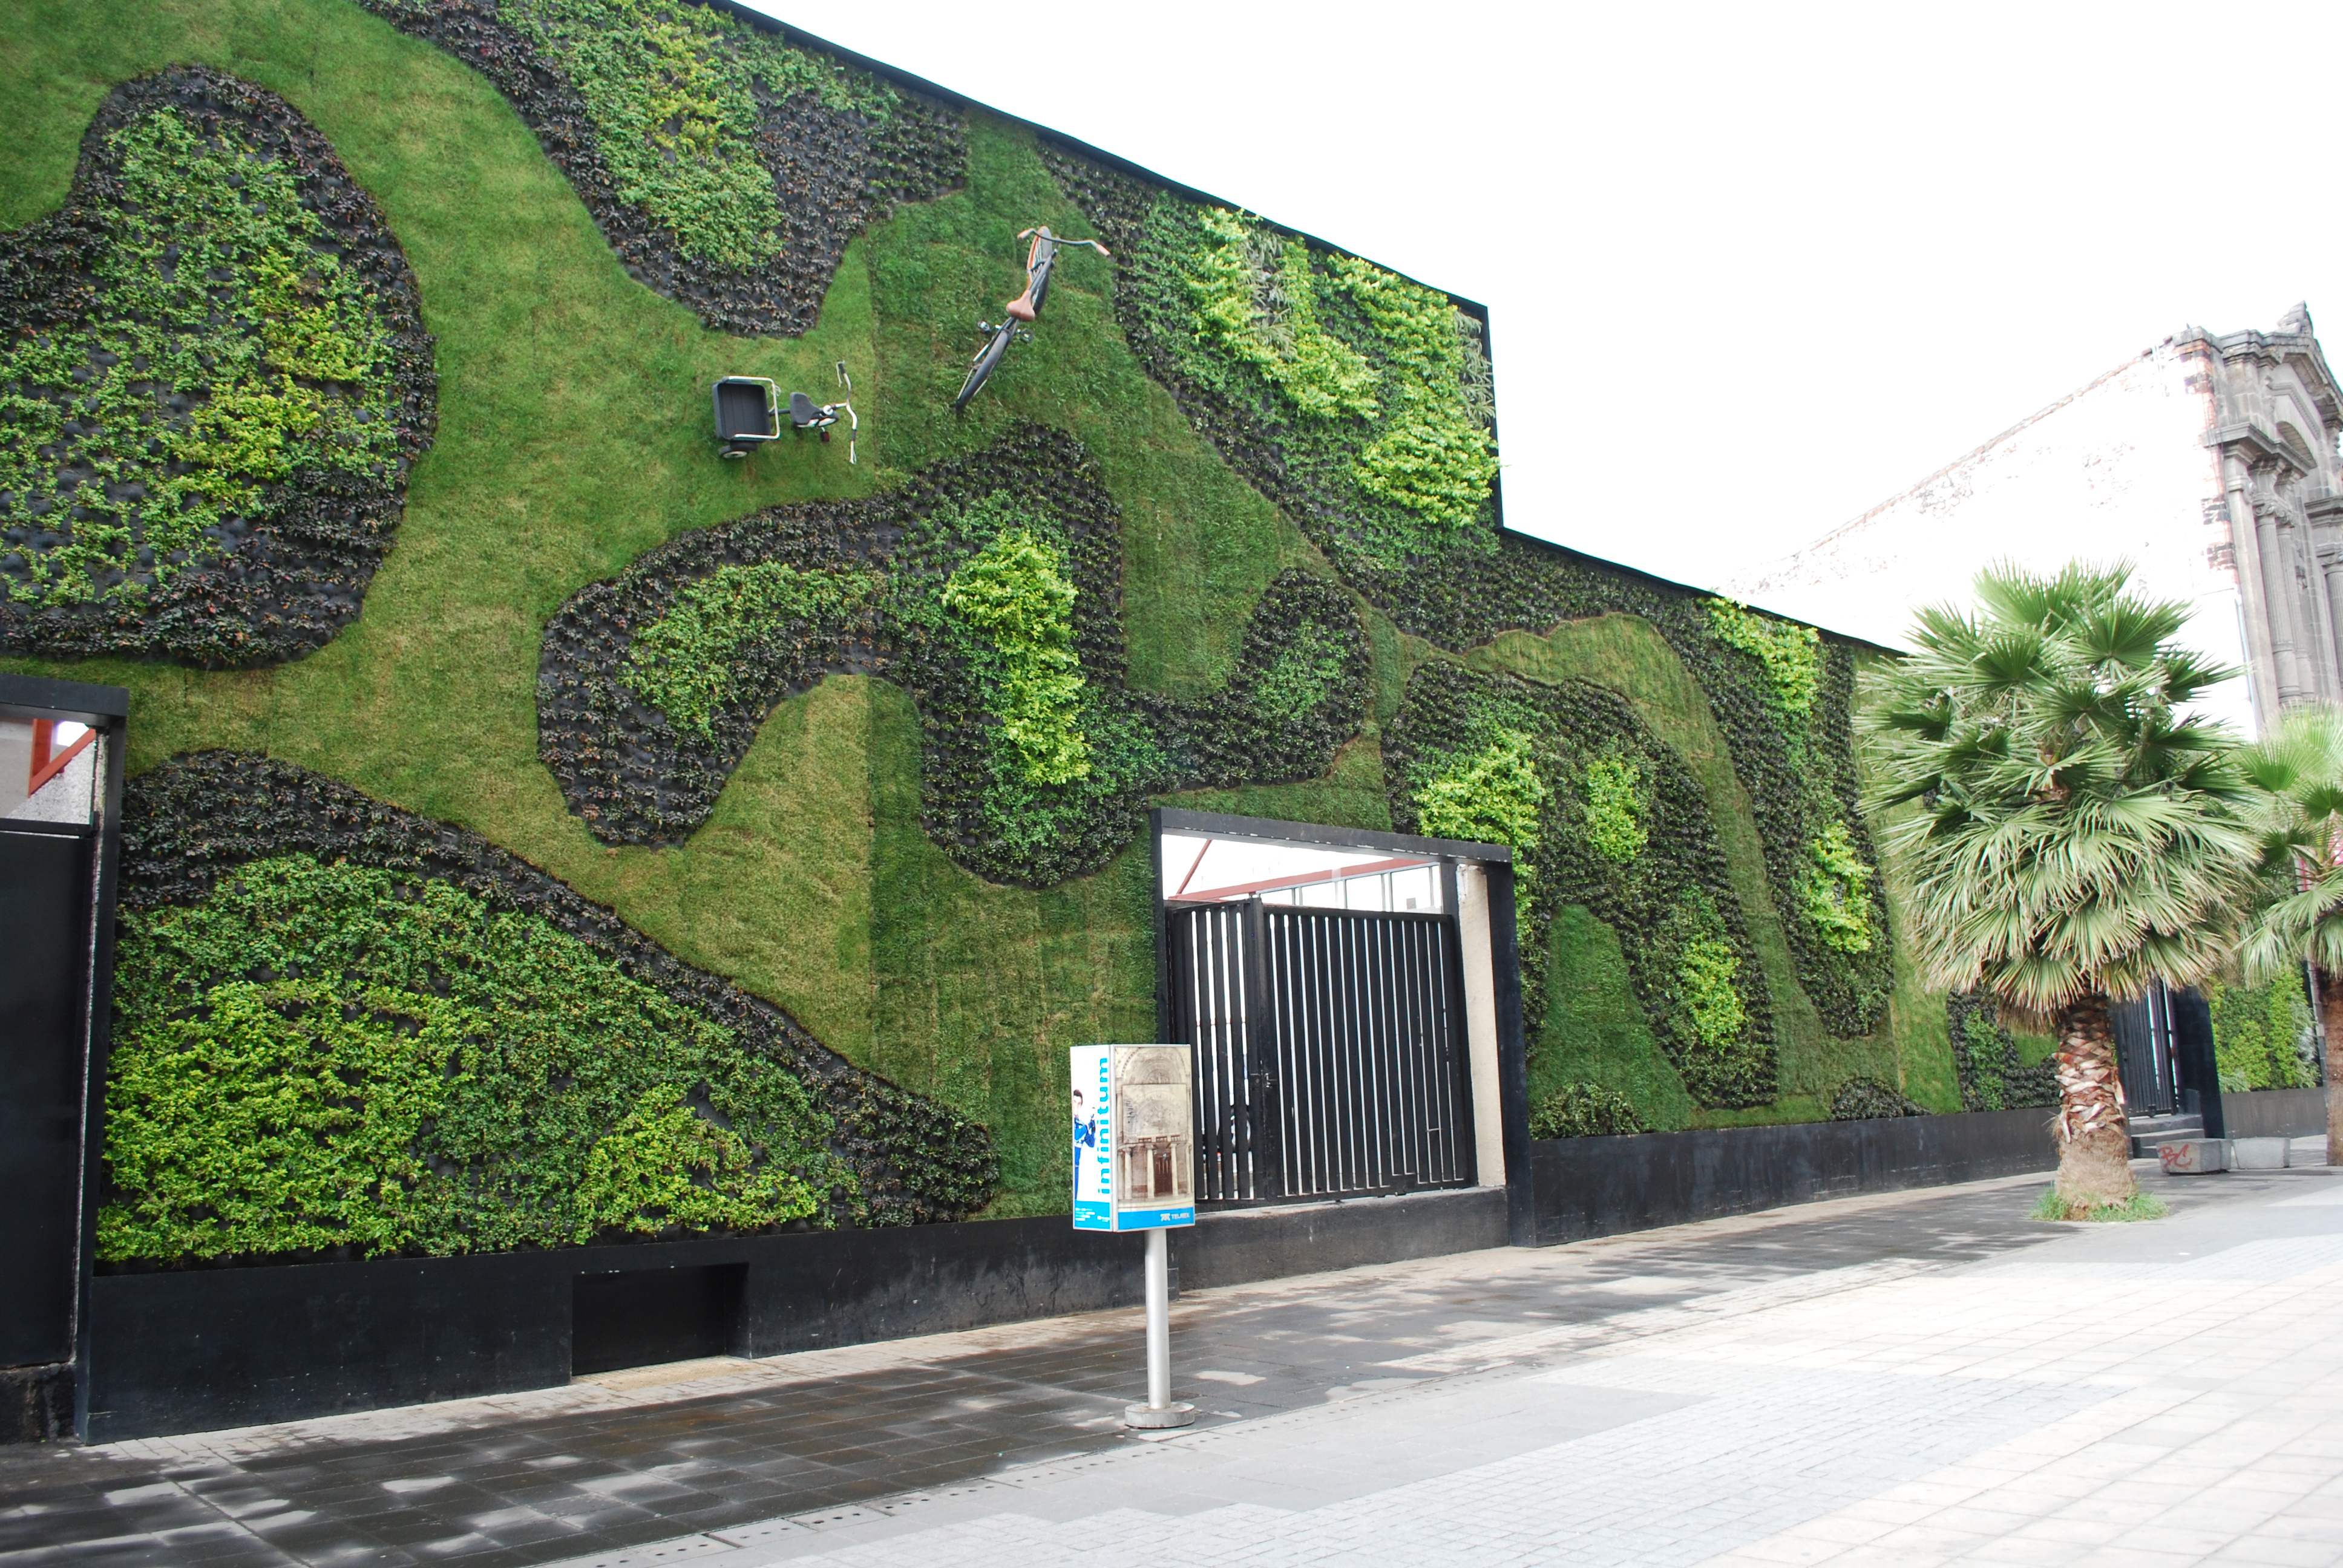 These Amazing Living Walls Make Us Green With Envy